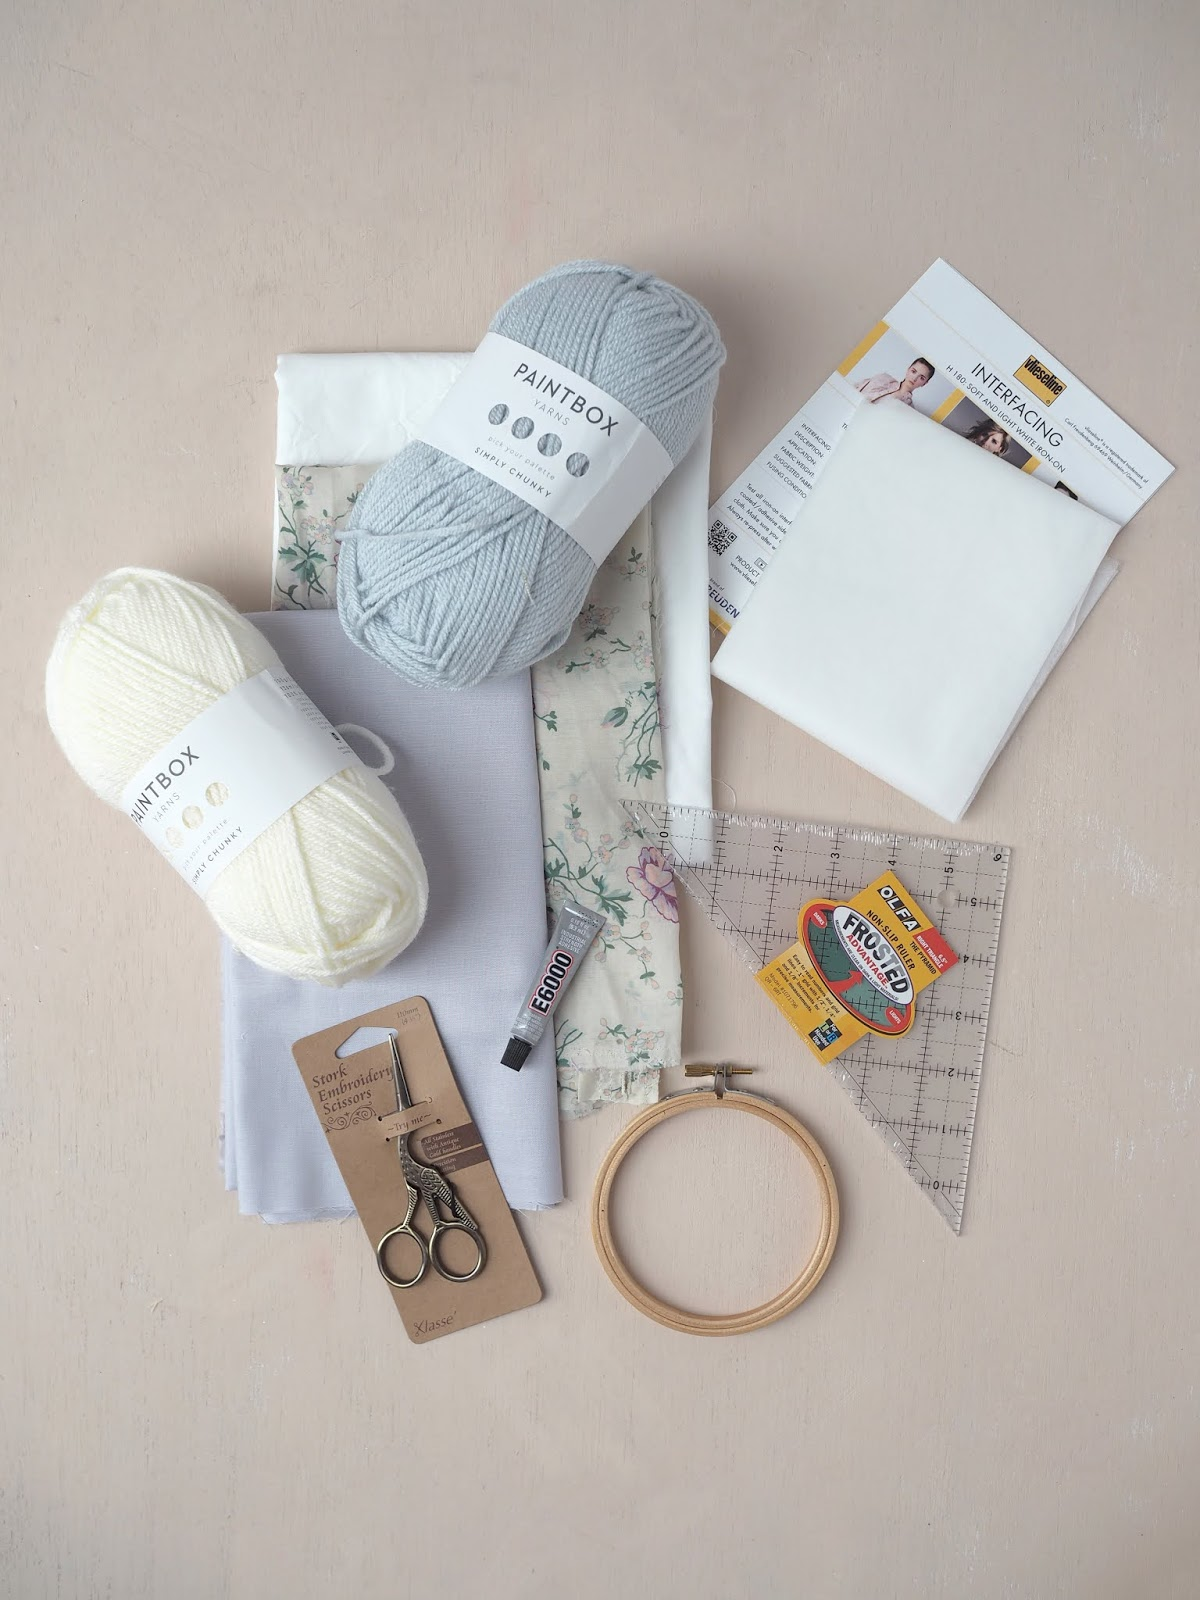 Competition – Win a craft kit with LoveCrafts